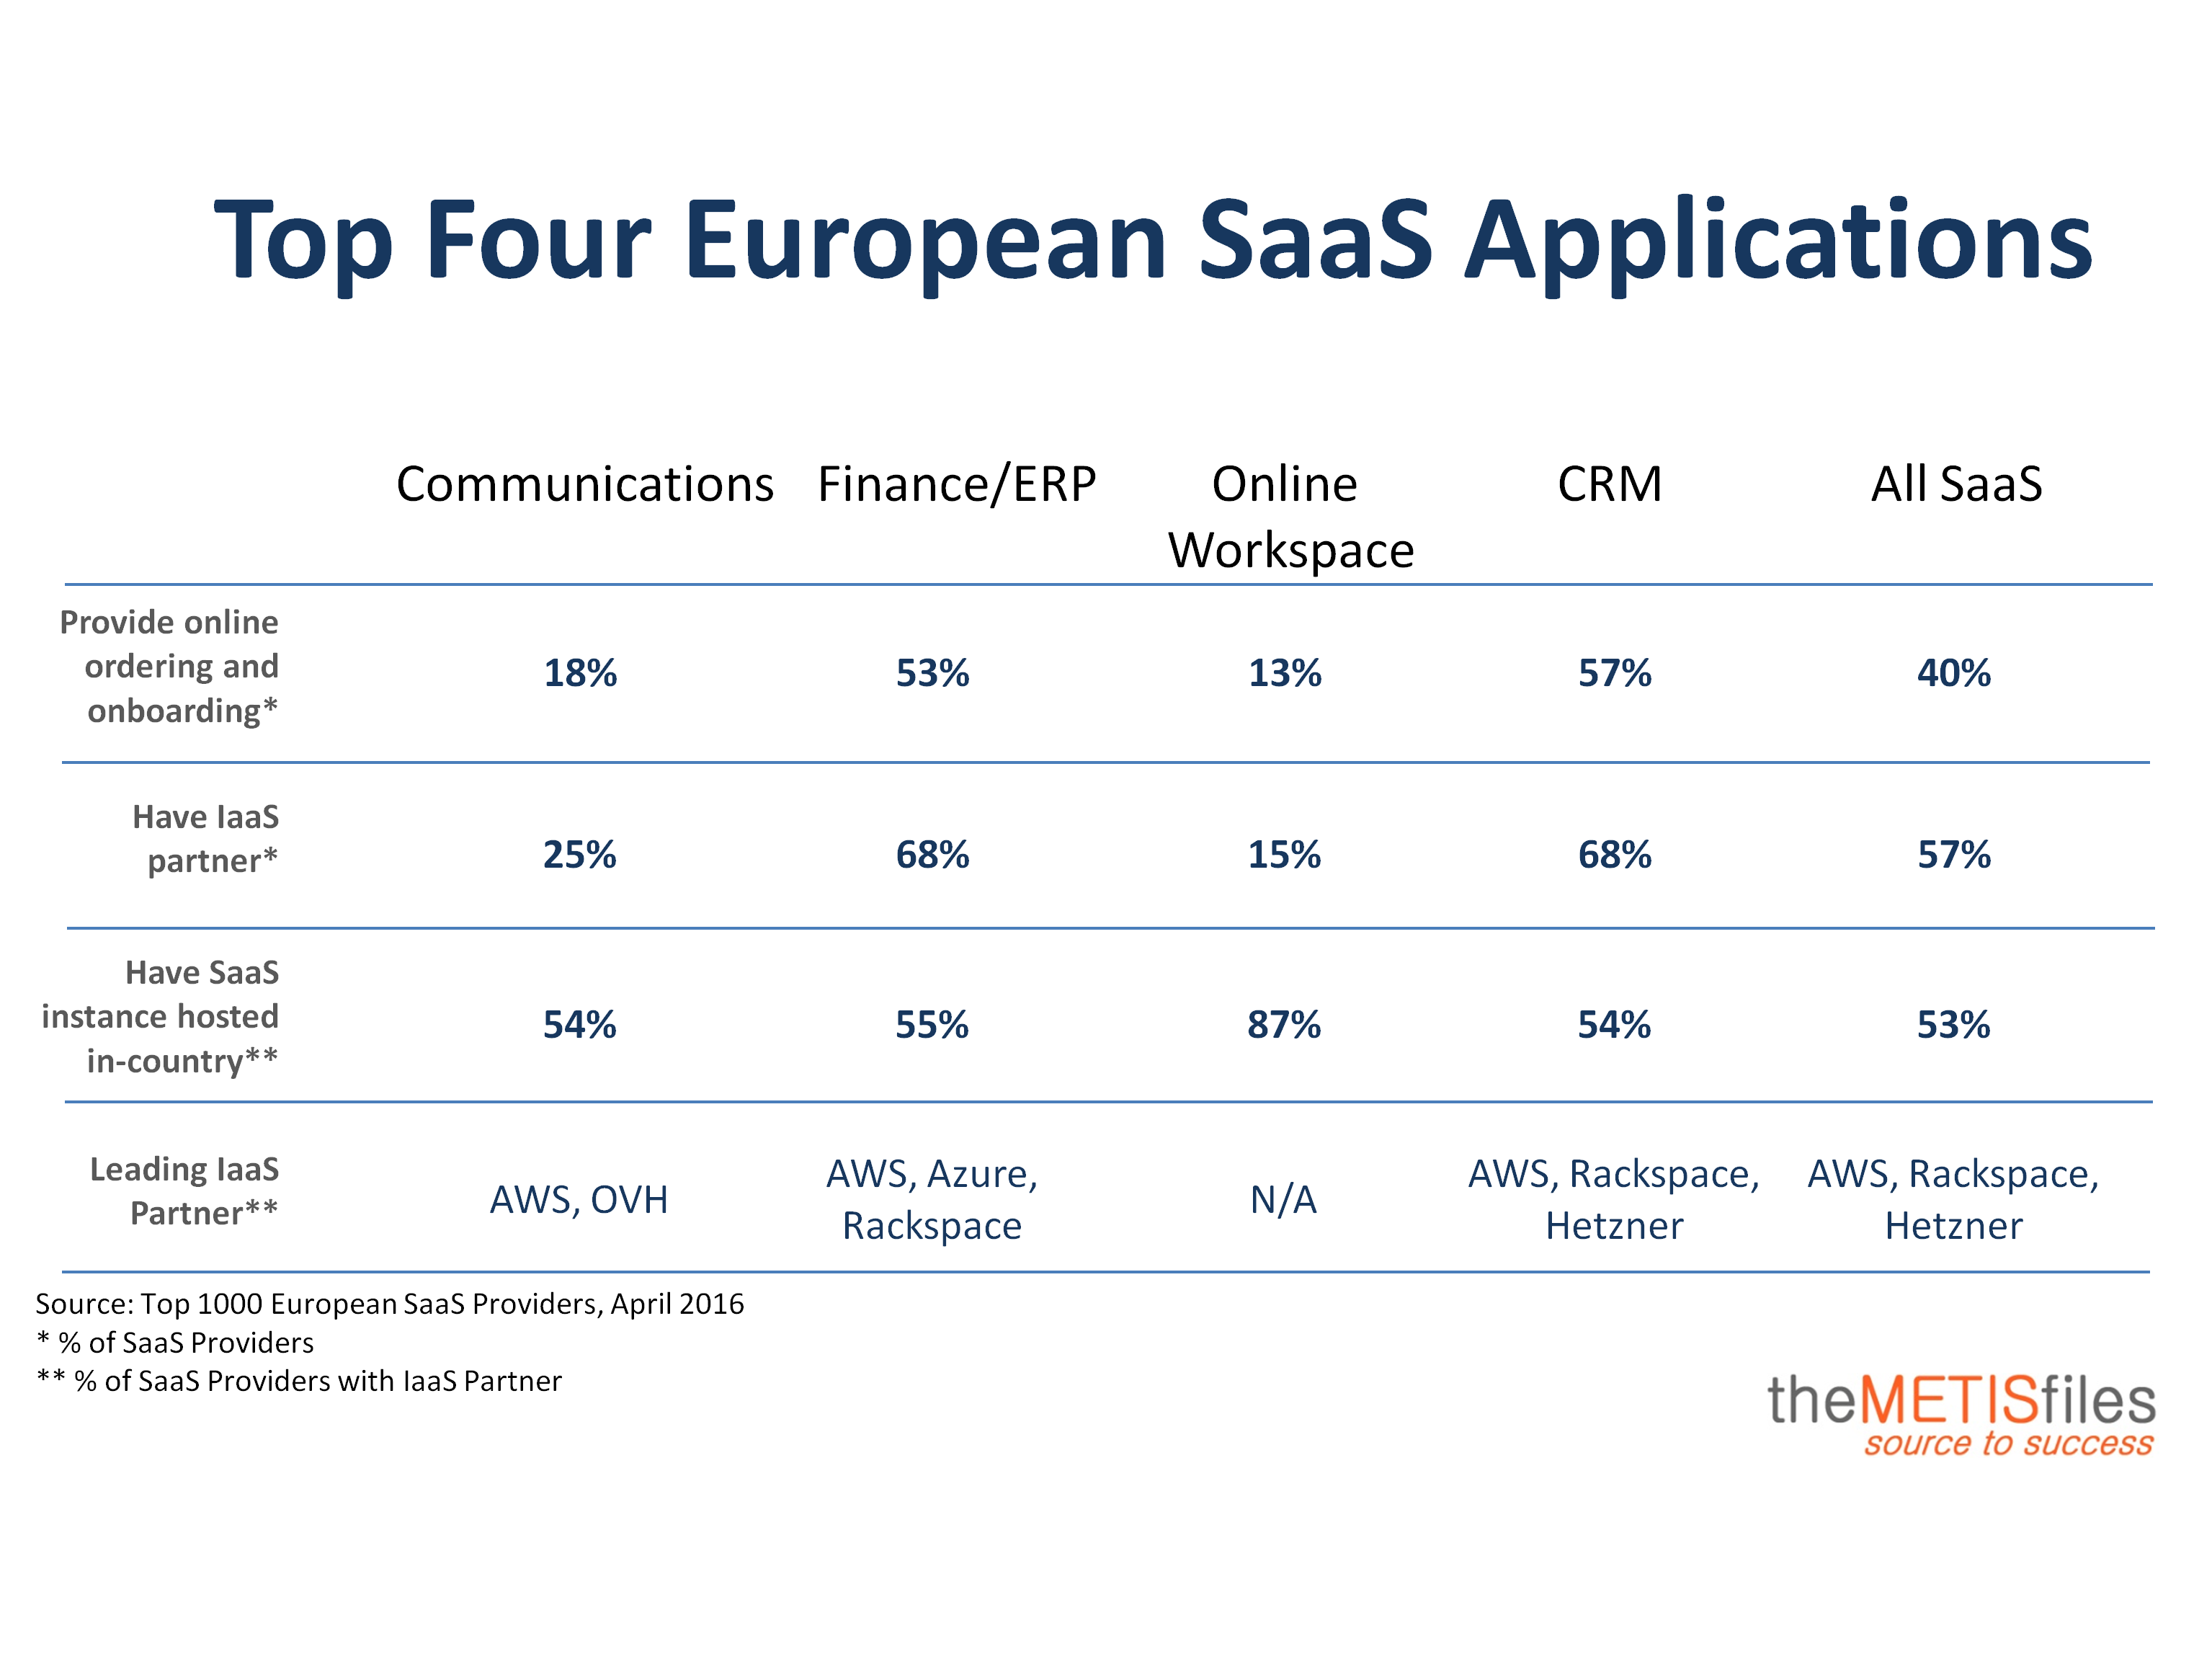 Top 1000 European SaaS Providers back